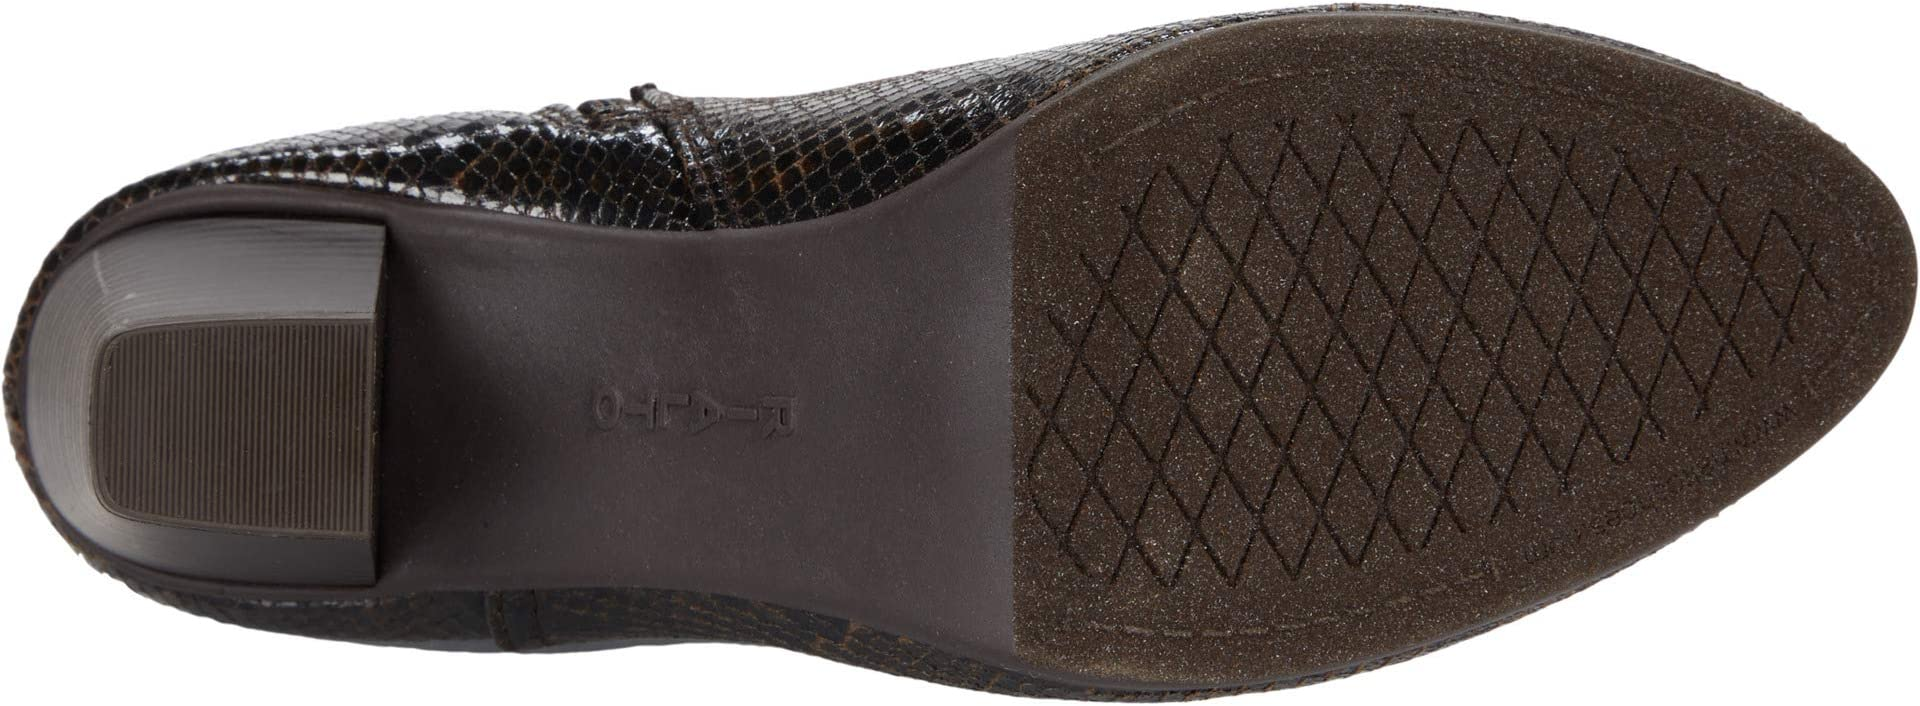 Rialto Farewell | Women's shoes | 2020 Newest